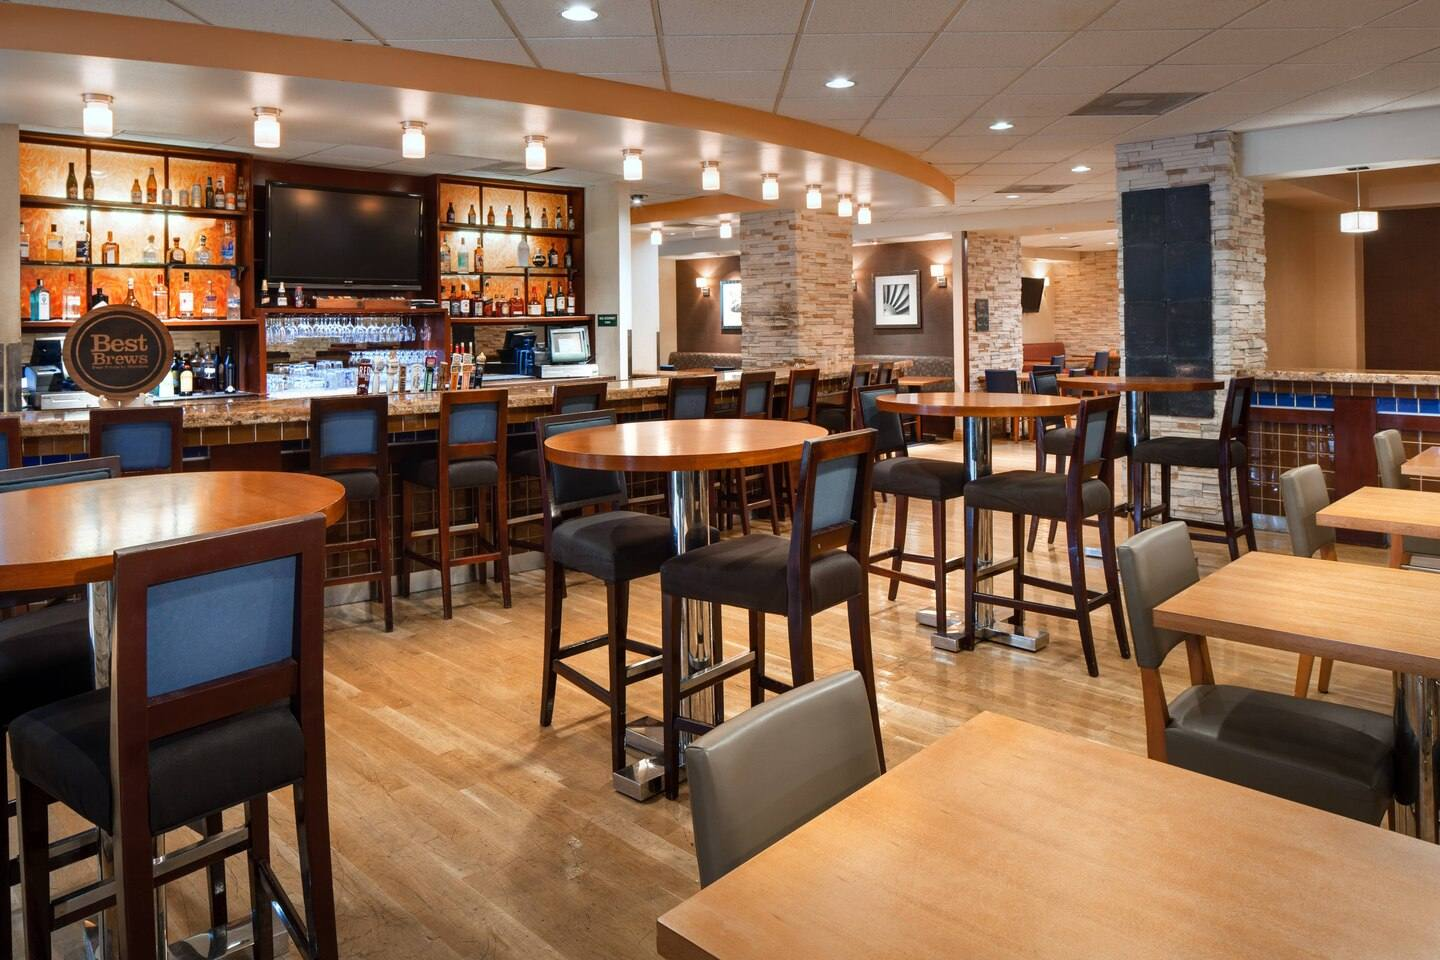 Brewer's Bar & Grill at the Four Points by Sheraton LAX